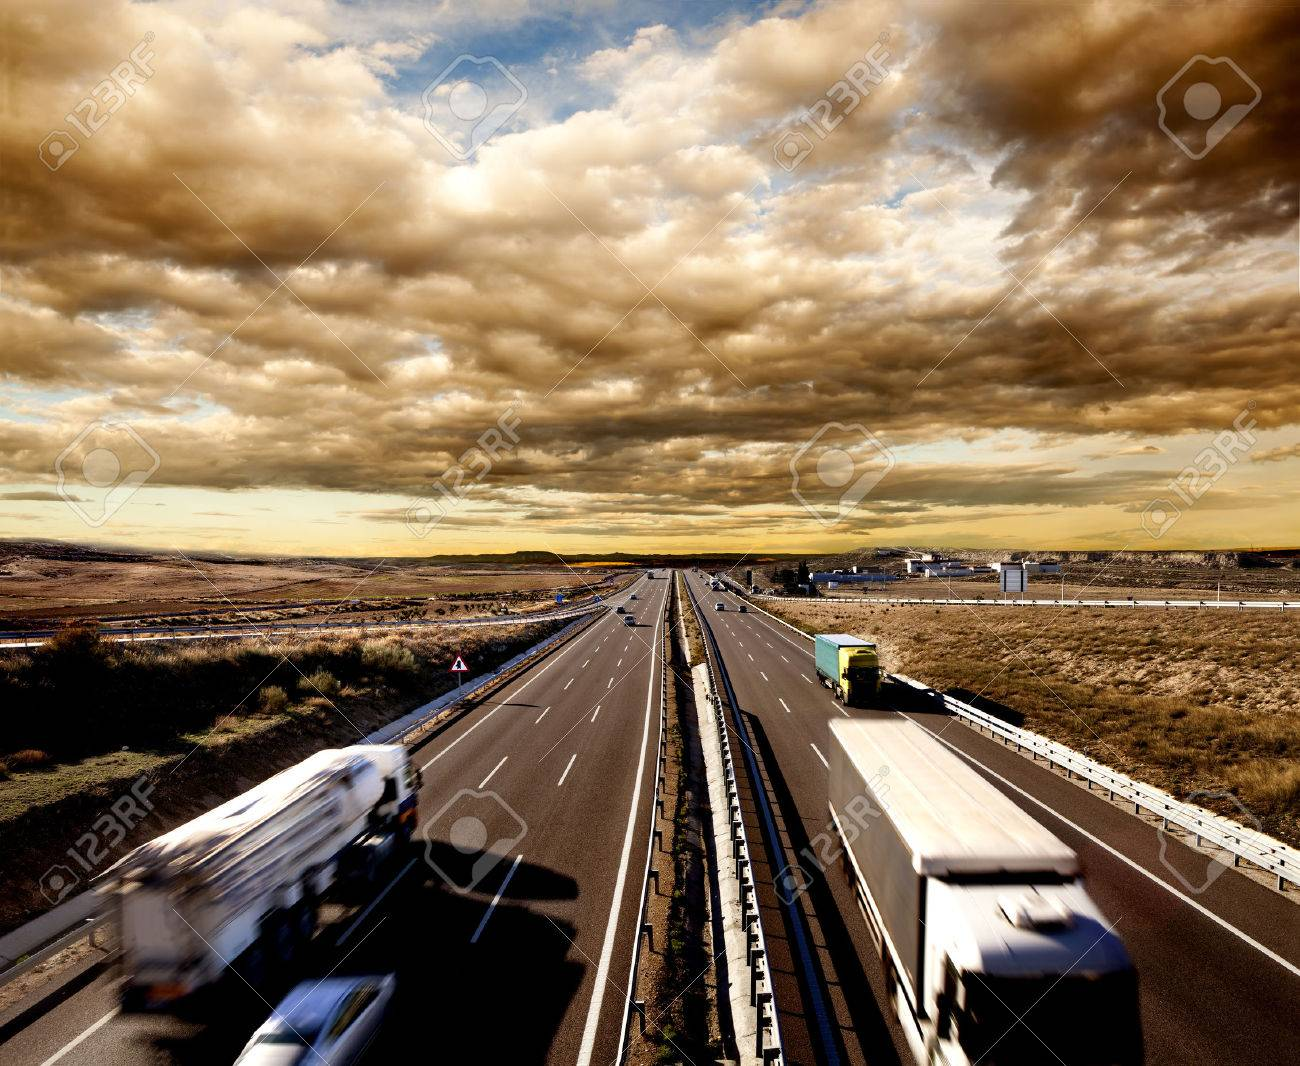 International shipment, trucks and cars driving on the highway. Logistics and warehousing - 50030414